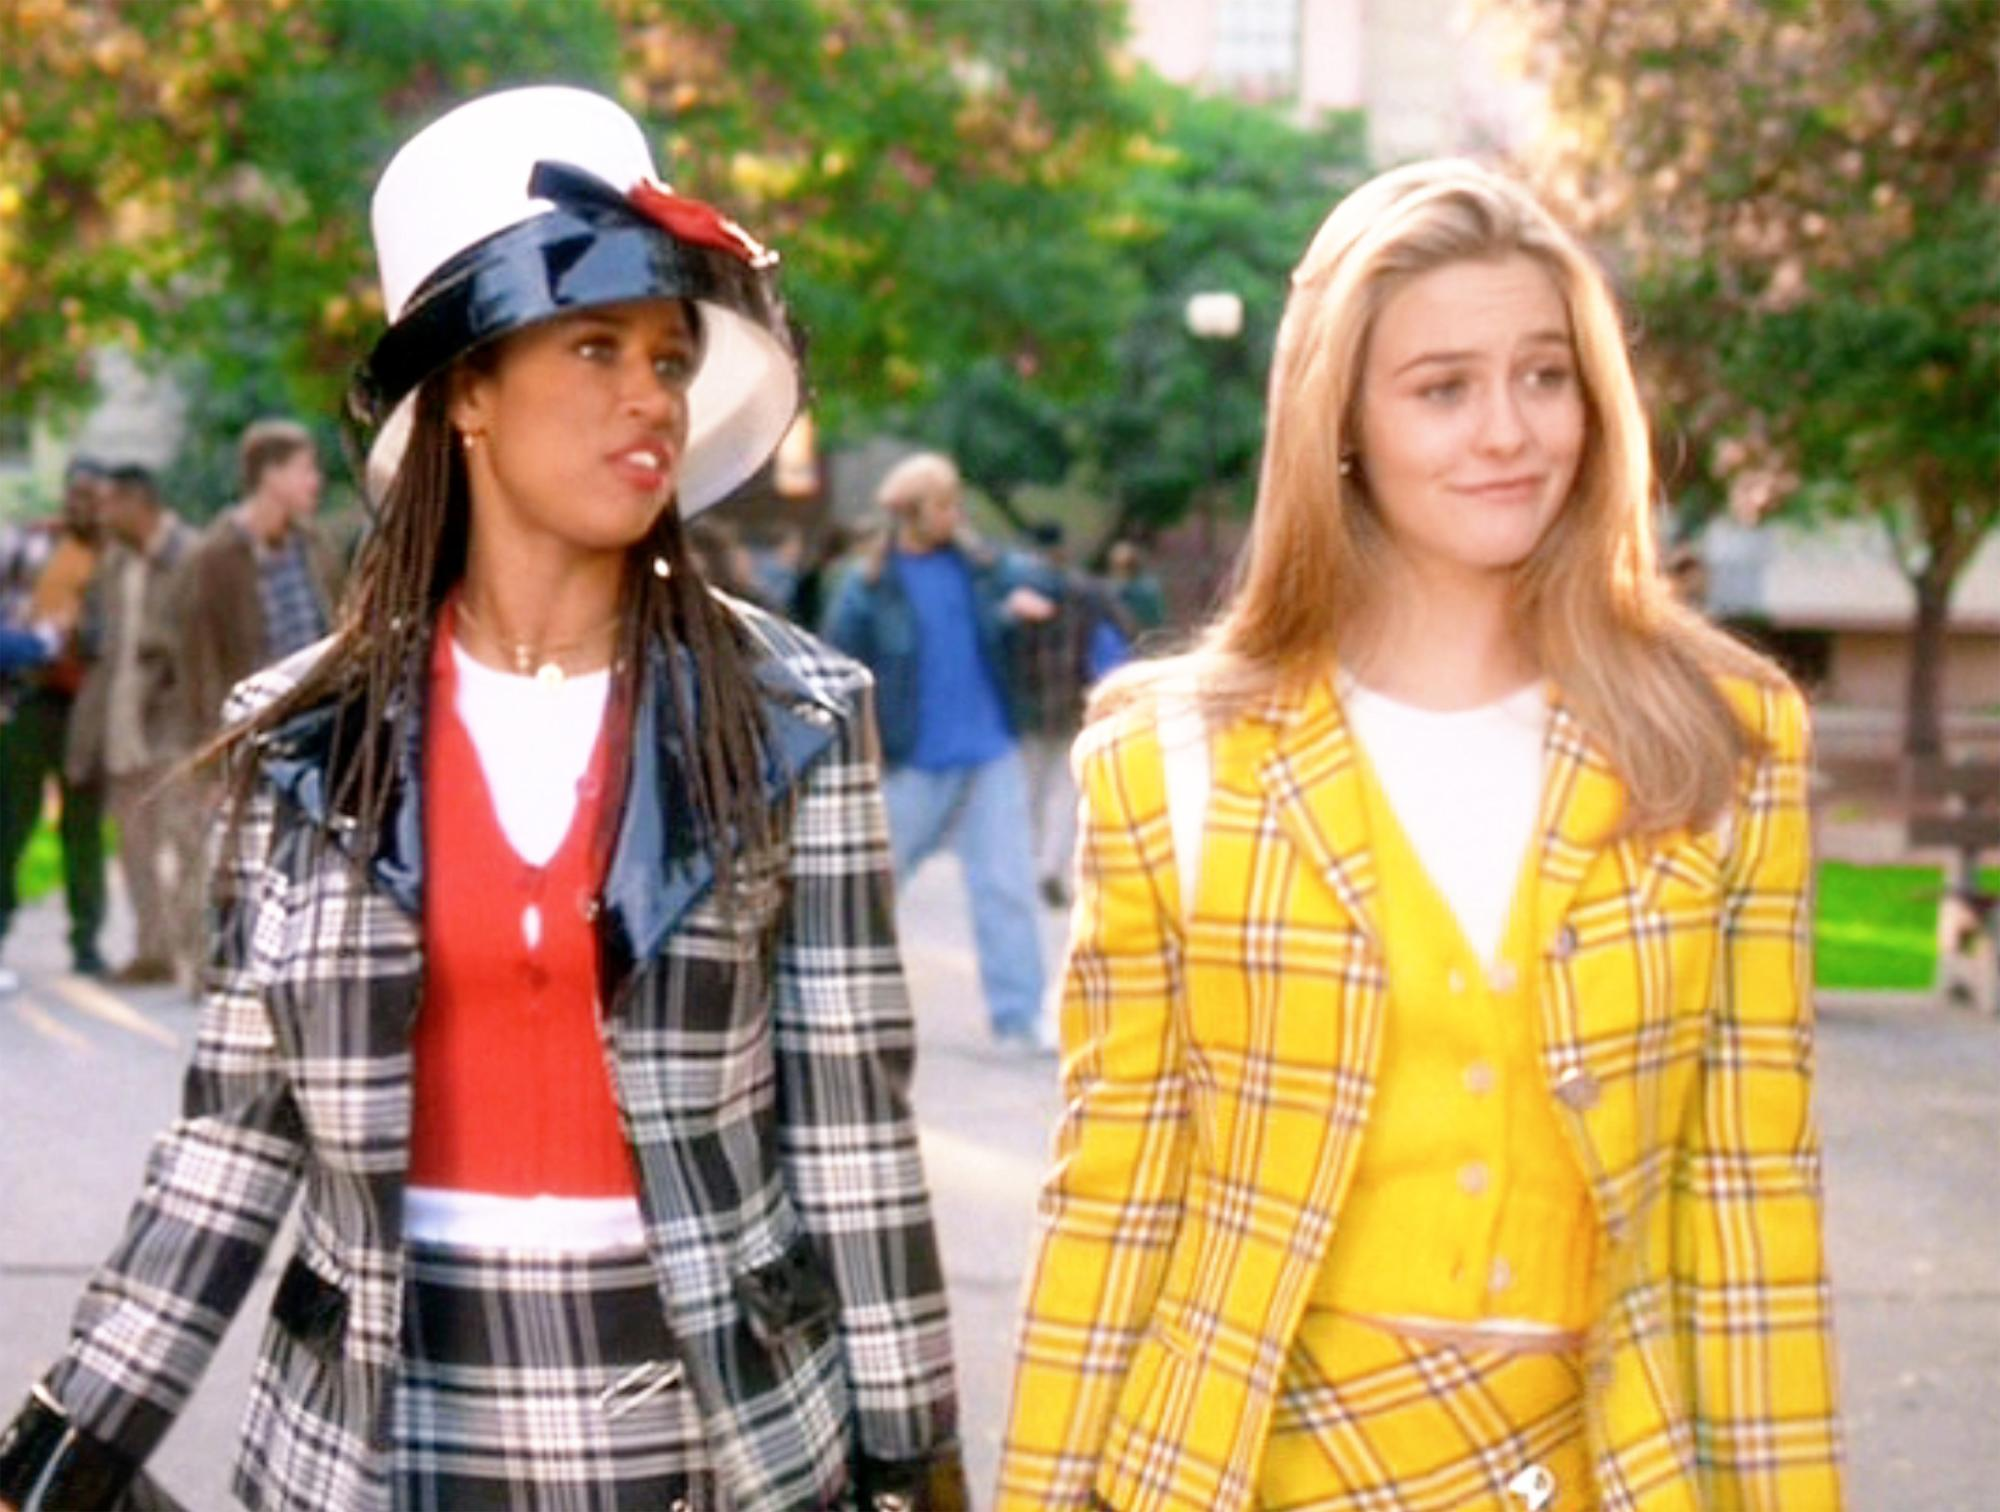 Clueless Turns 25 Where Are They Now